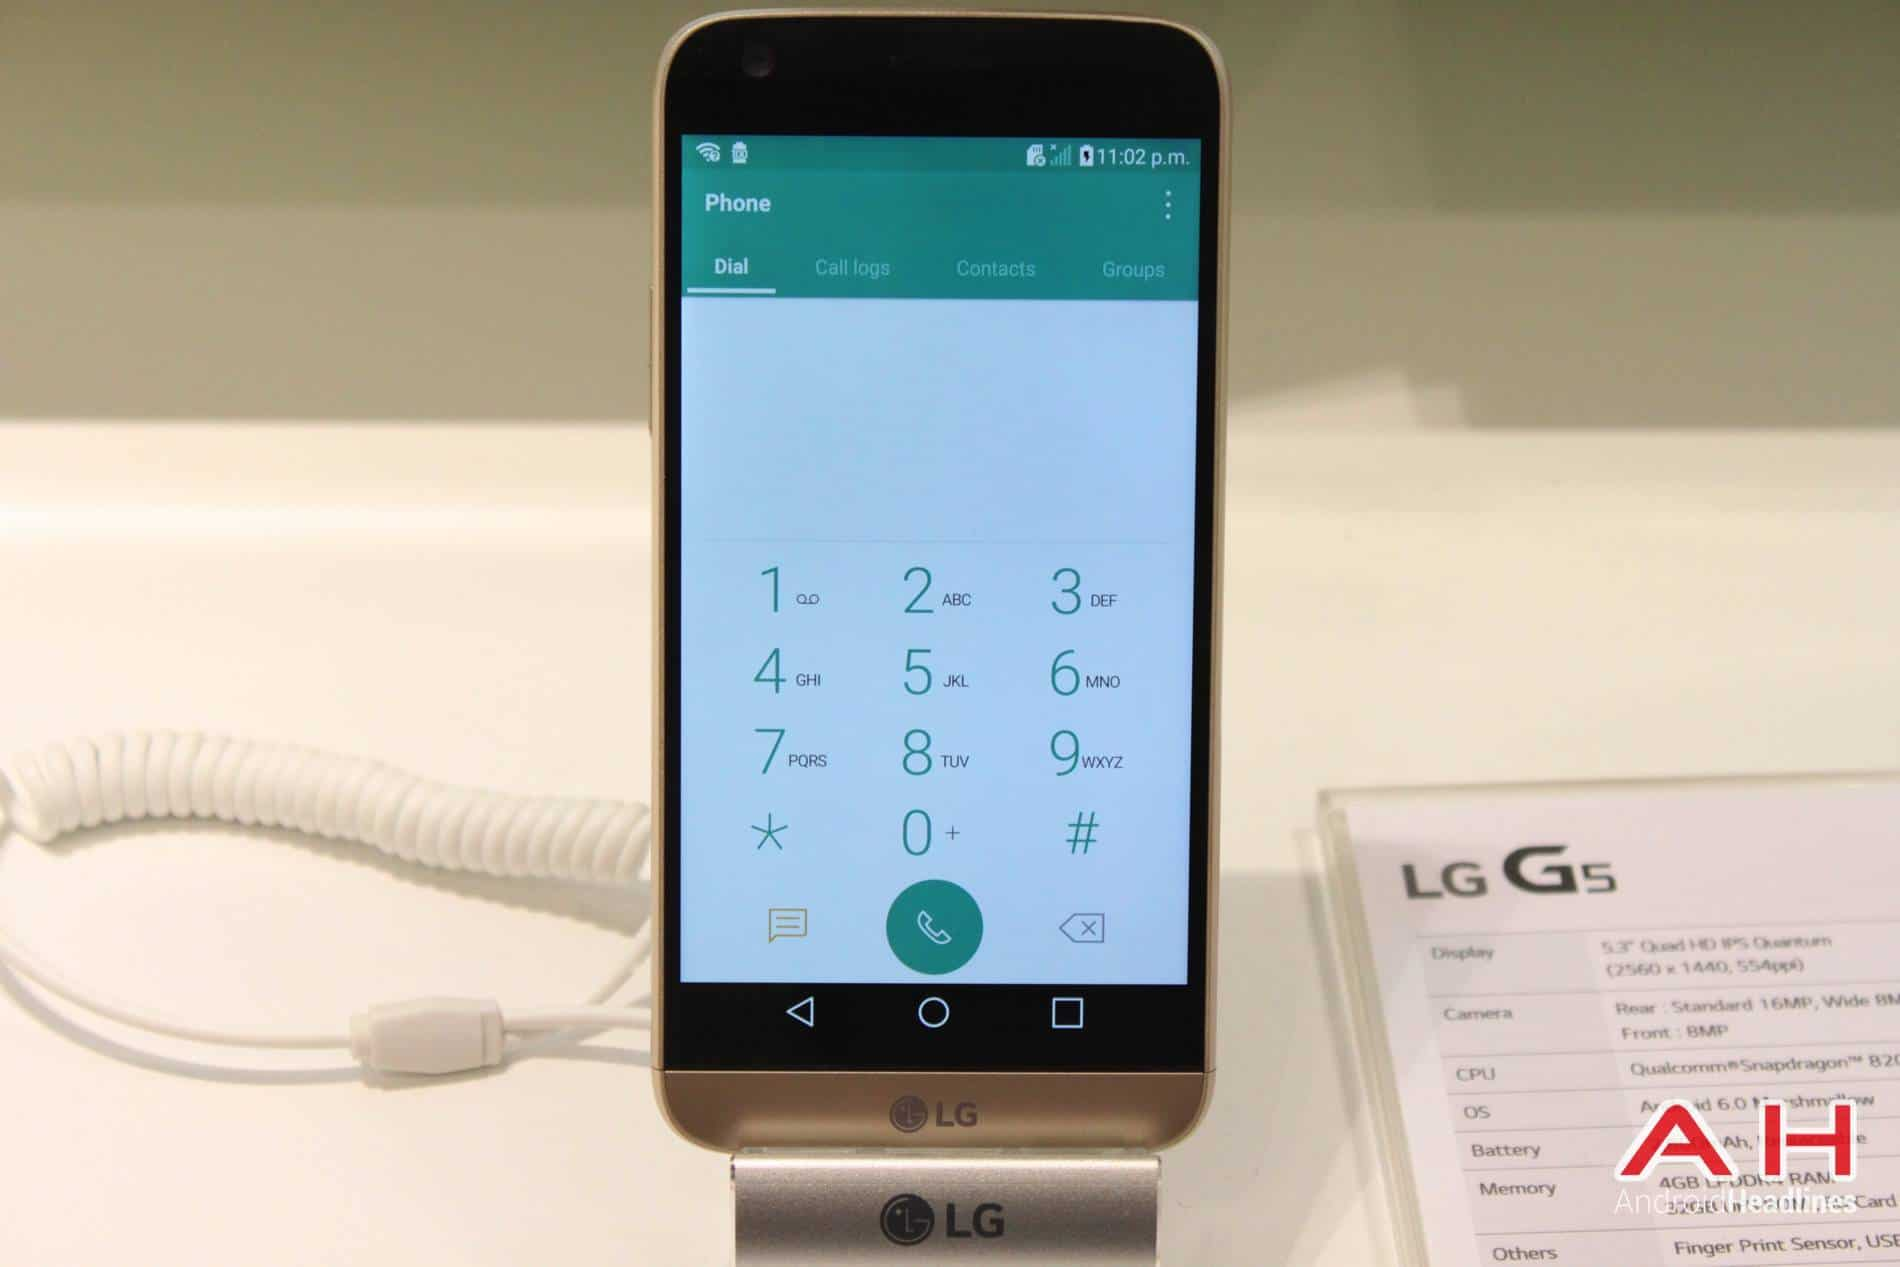 LG G5 Booth MWC AH 13